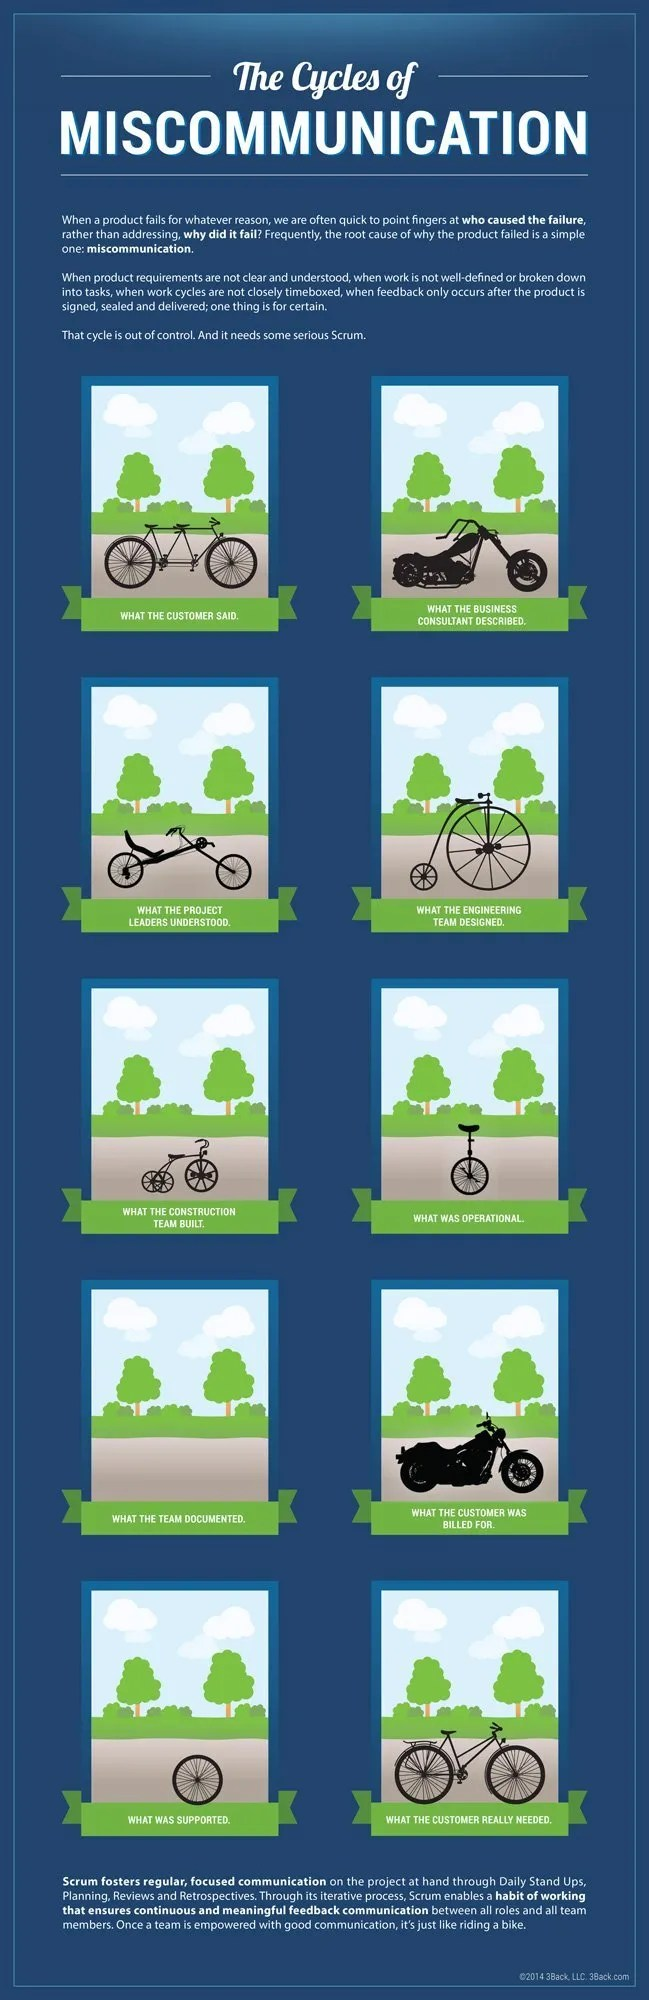 The-Cycles-of-Miscommunication-Infographic